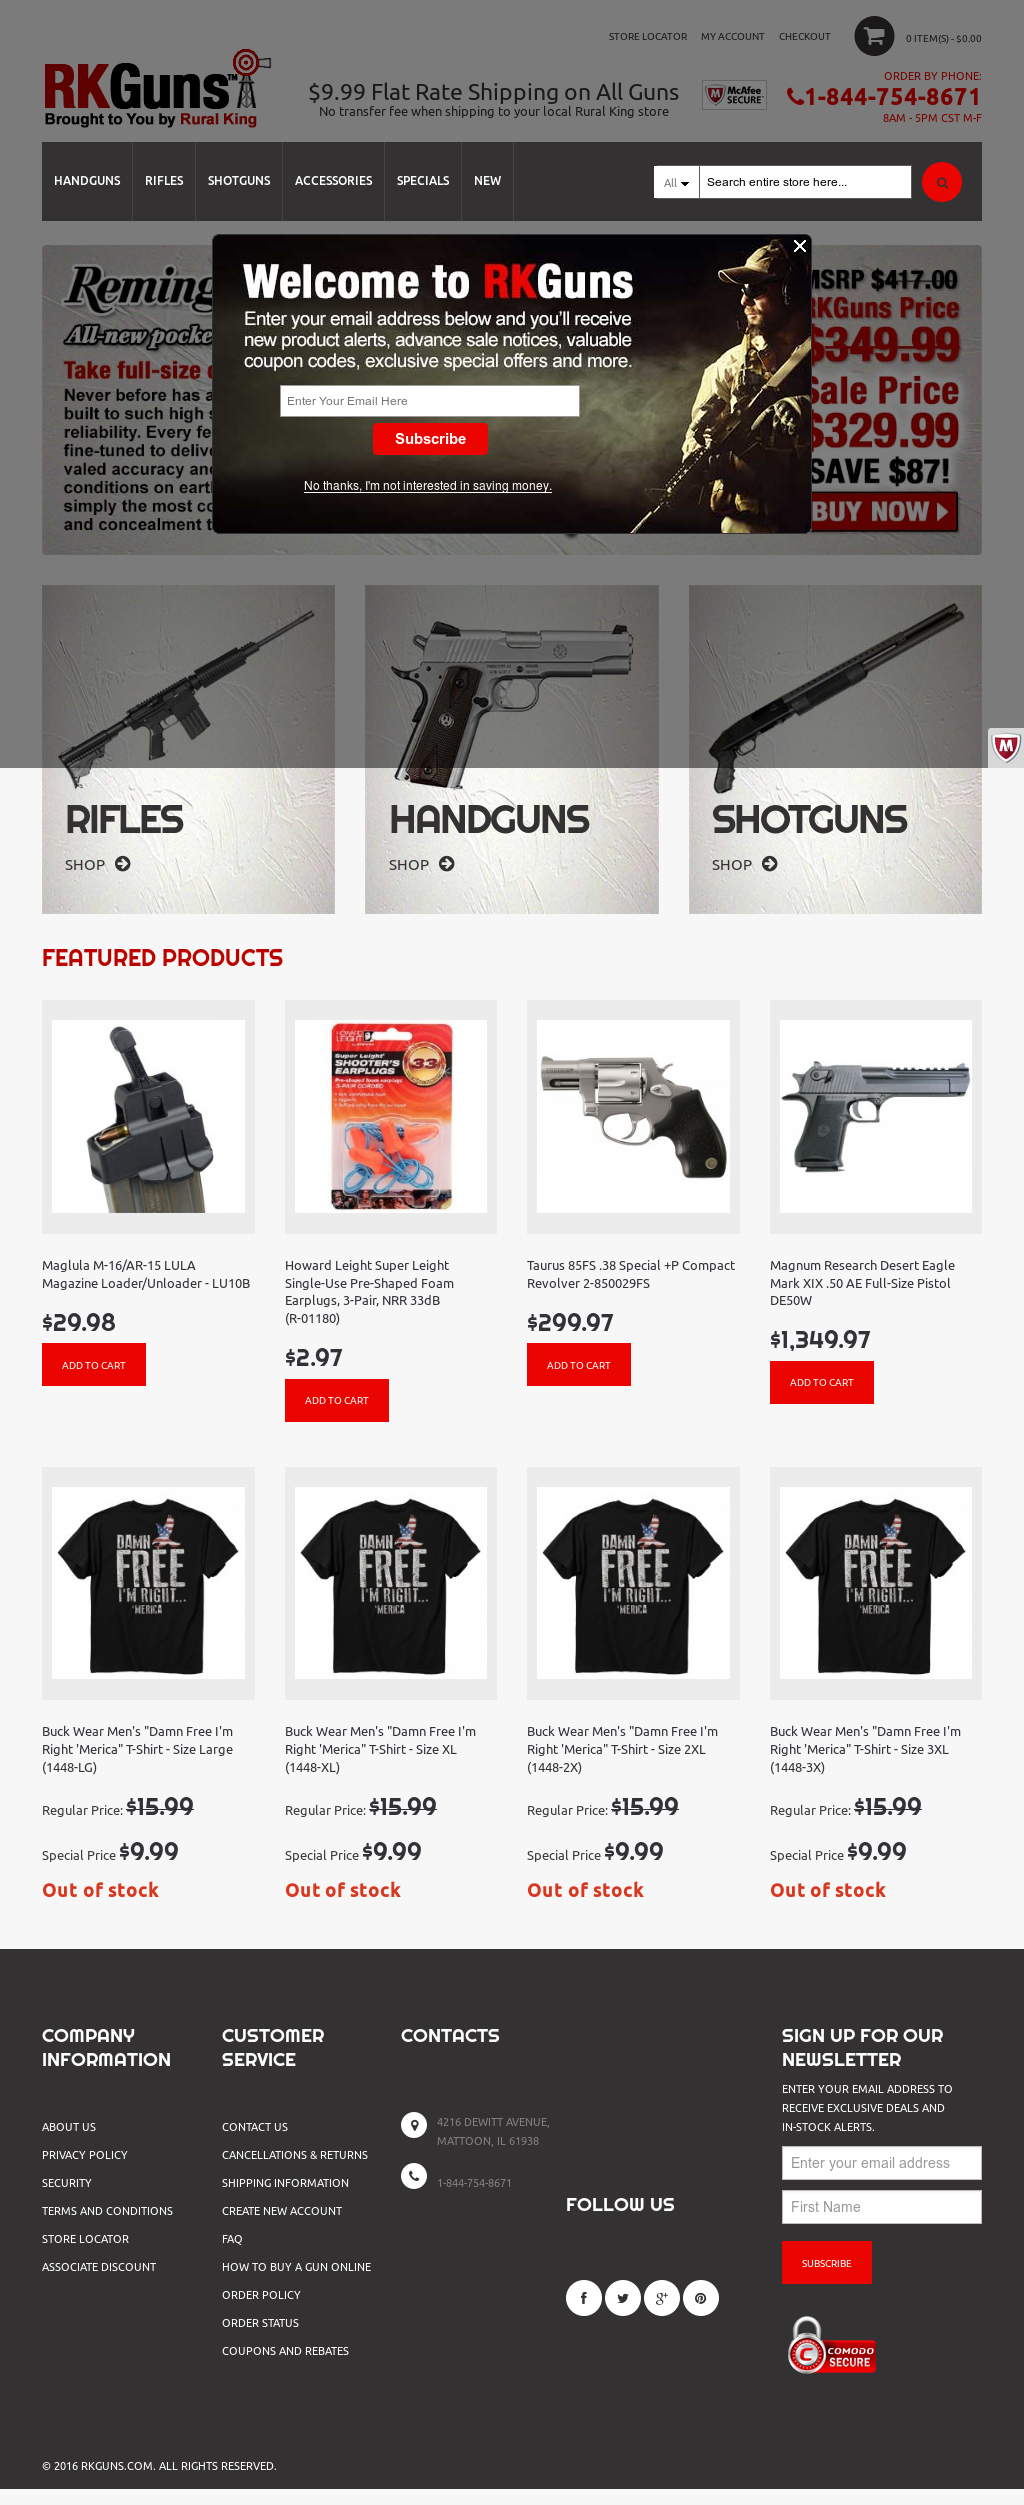 Rk Guns Competitors, Revenue and Employees - Owler Company